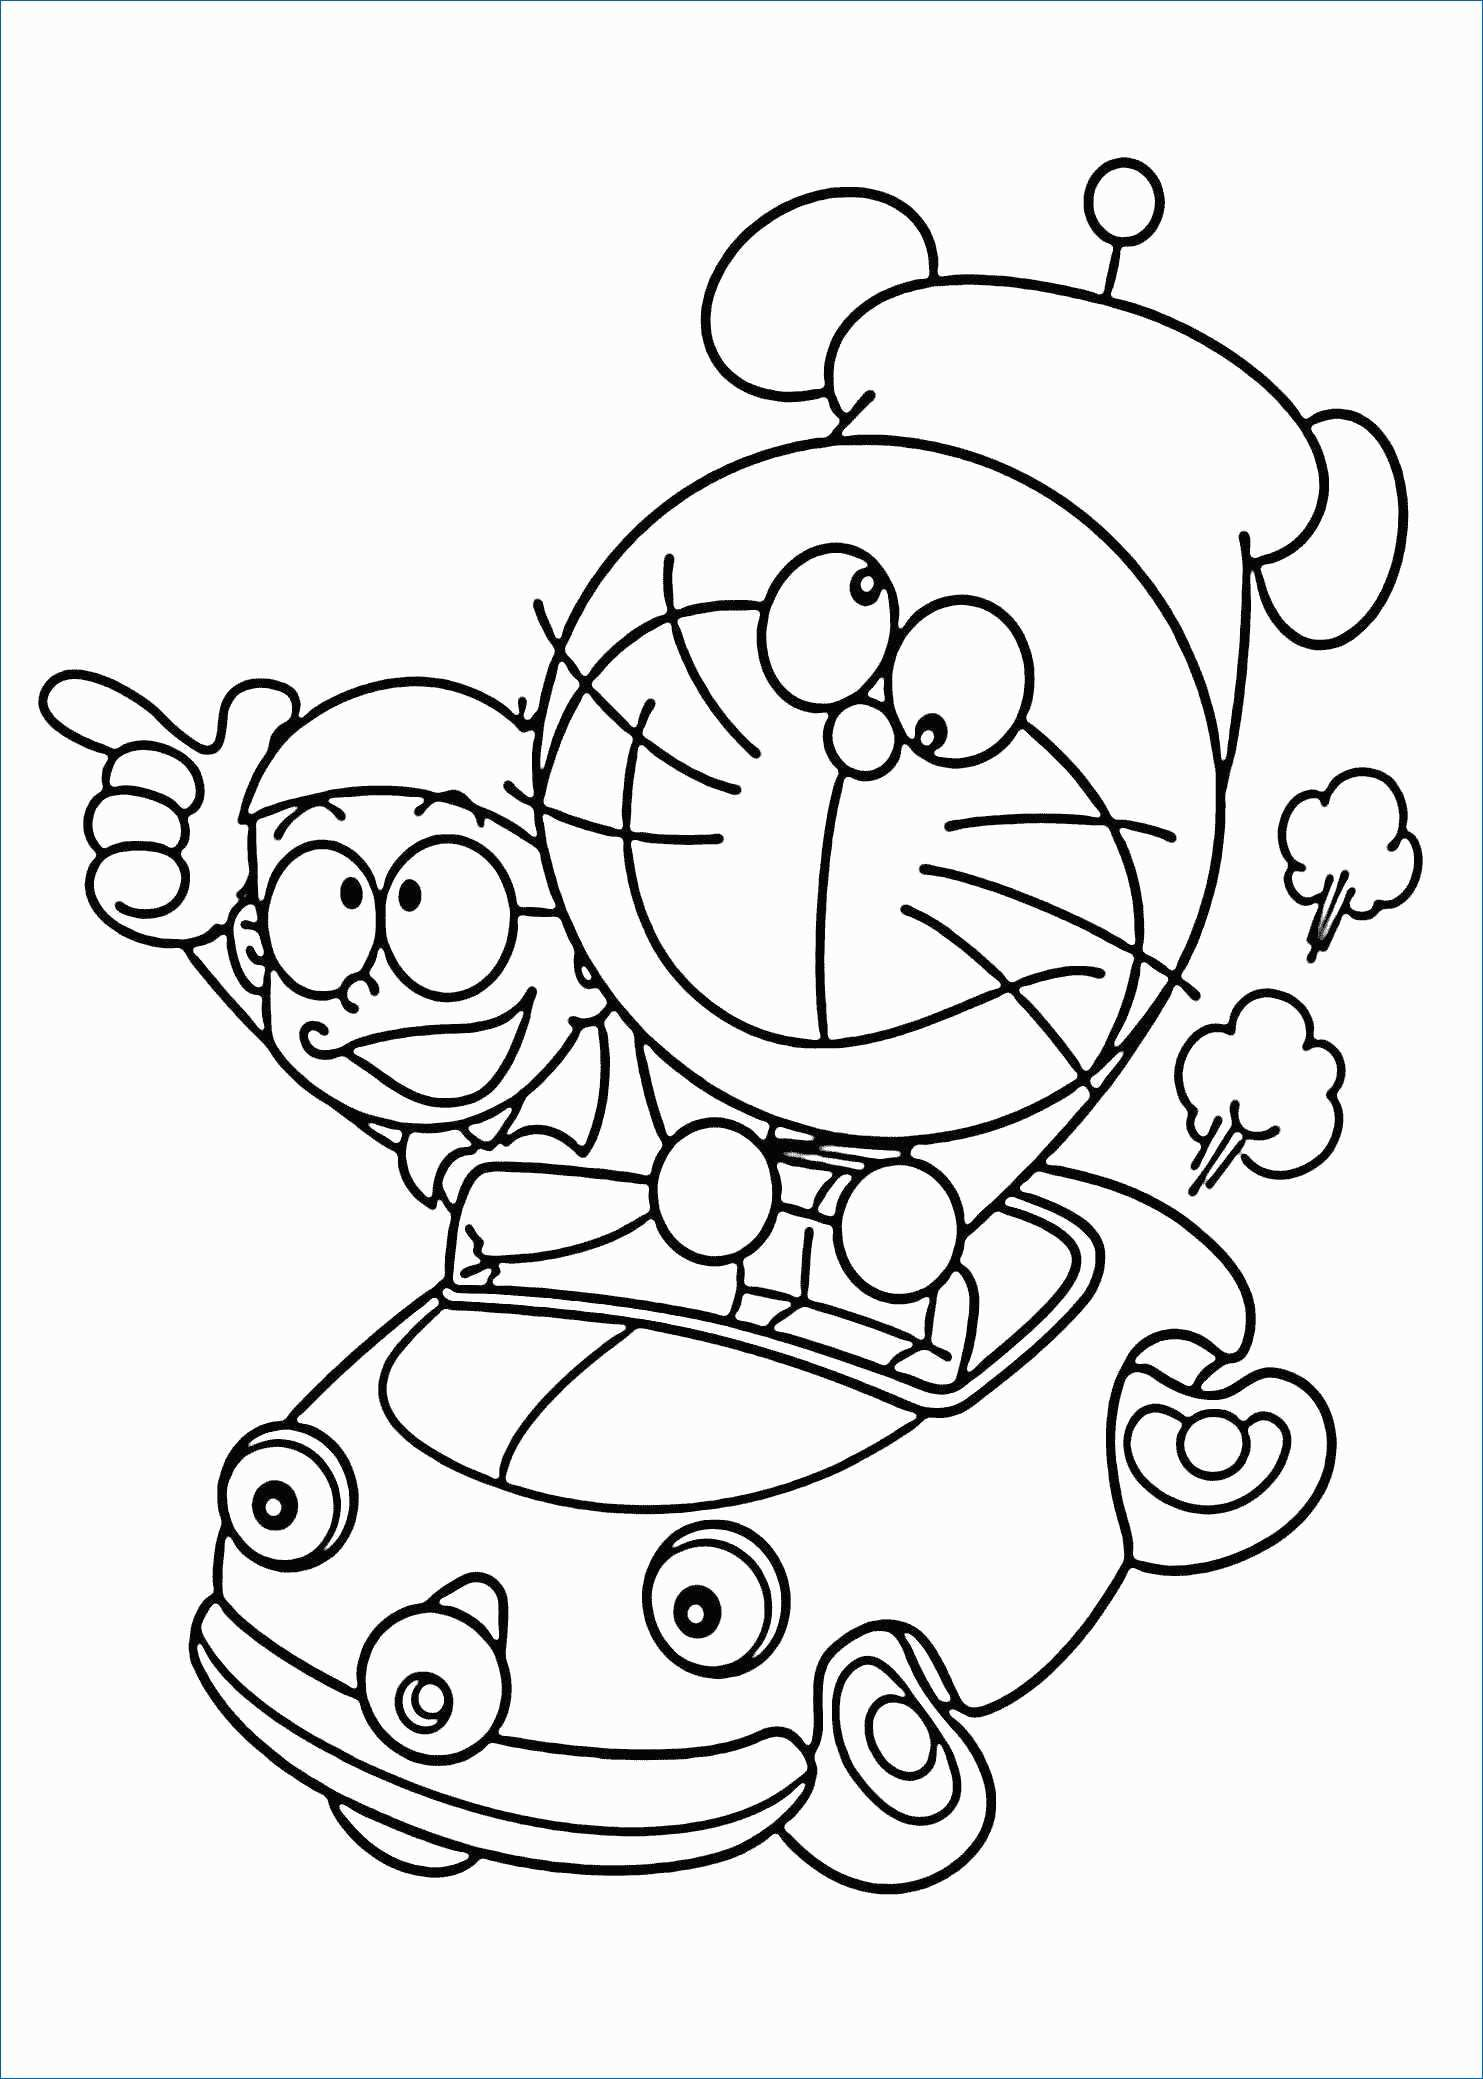 Kitty Cat Coloring Pages Printables Http Www Wallpaperartdesignhd Us Kitty Cat Colo Coloring Pages Inspirational Mermaid Coloring Pages Animal Coloring Pages